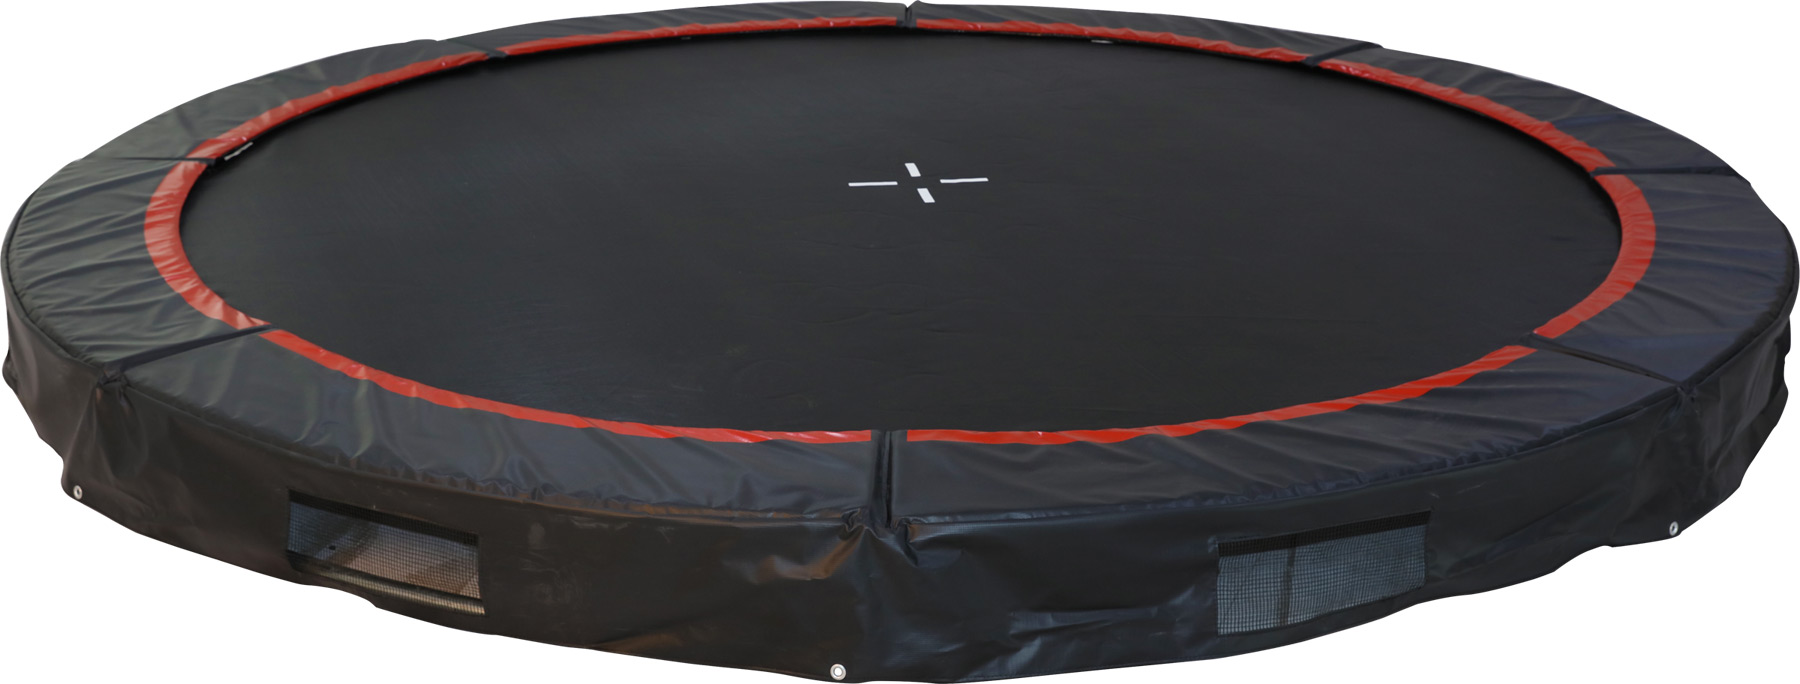 Home Products Outdoor And Movement Toys Trampolines In Ground Trampoline